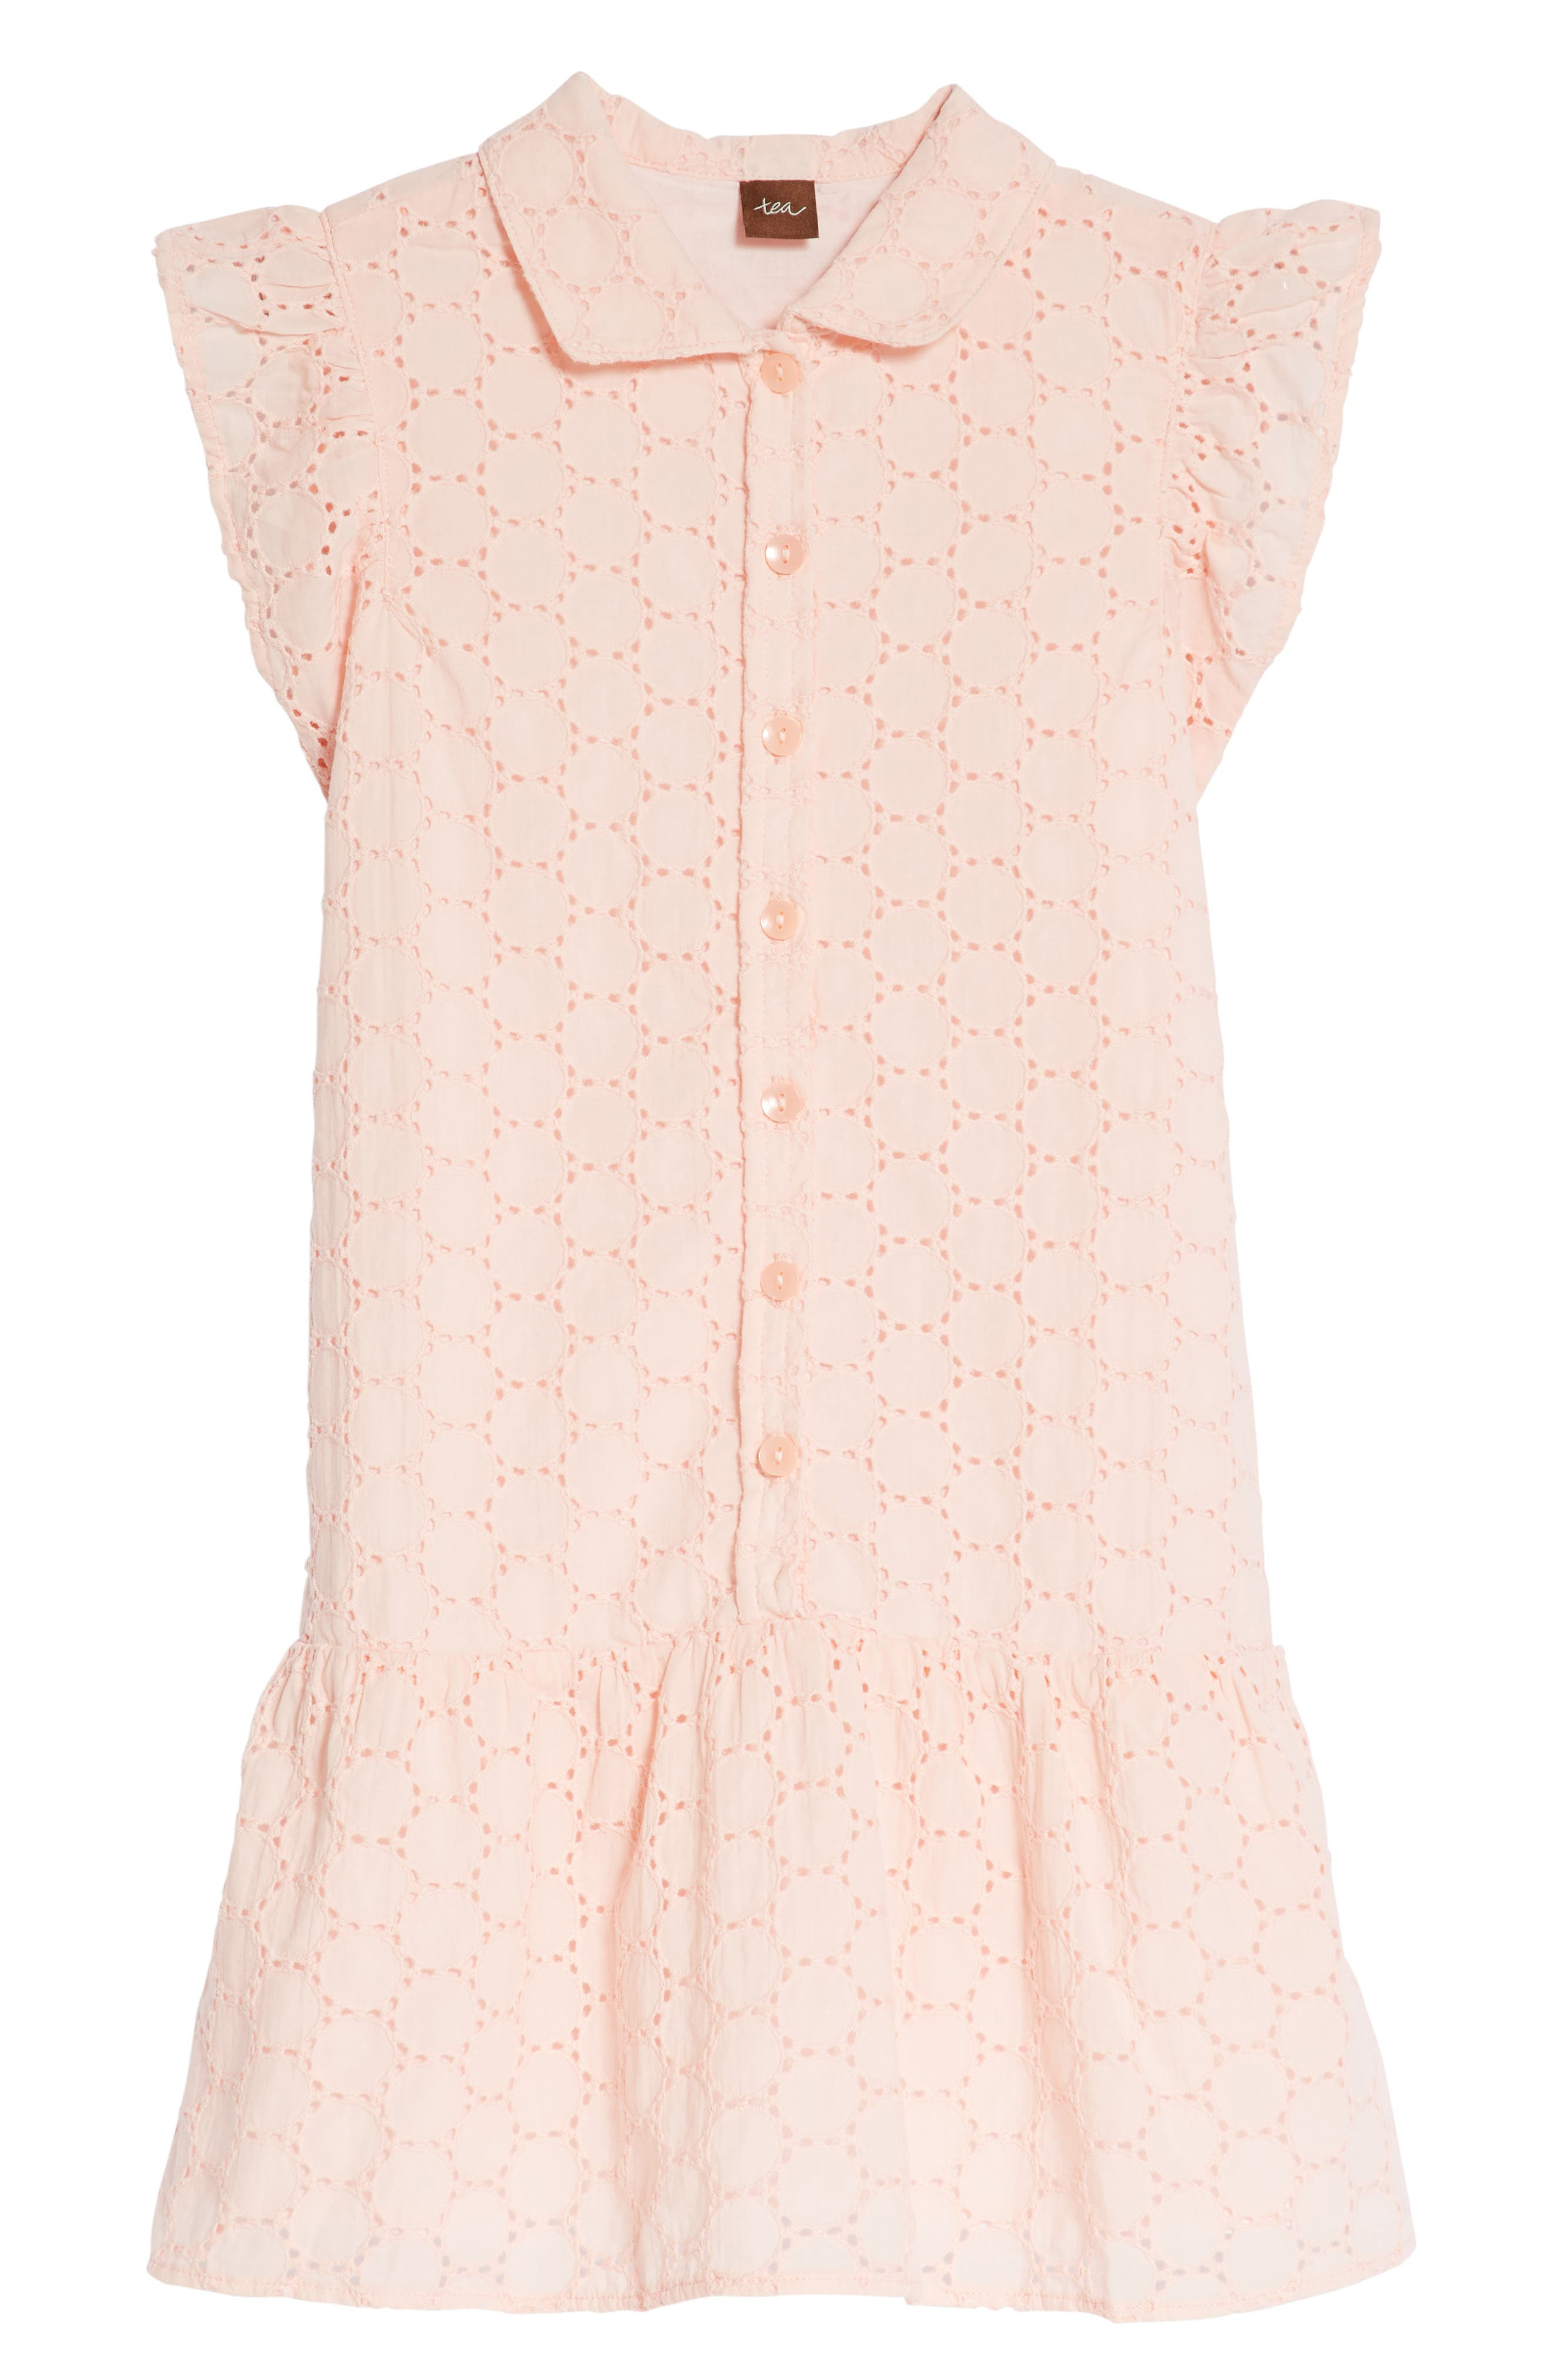 Eyelet Woven Dress,                         Main,                         color, Pink Gloss